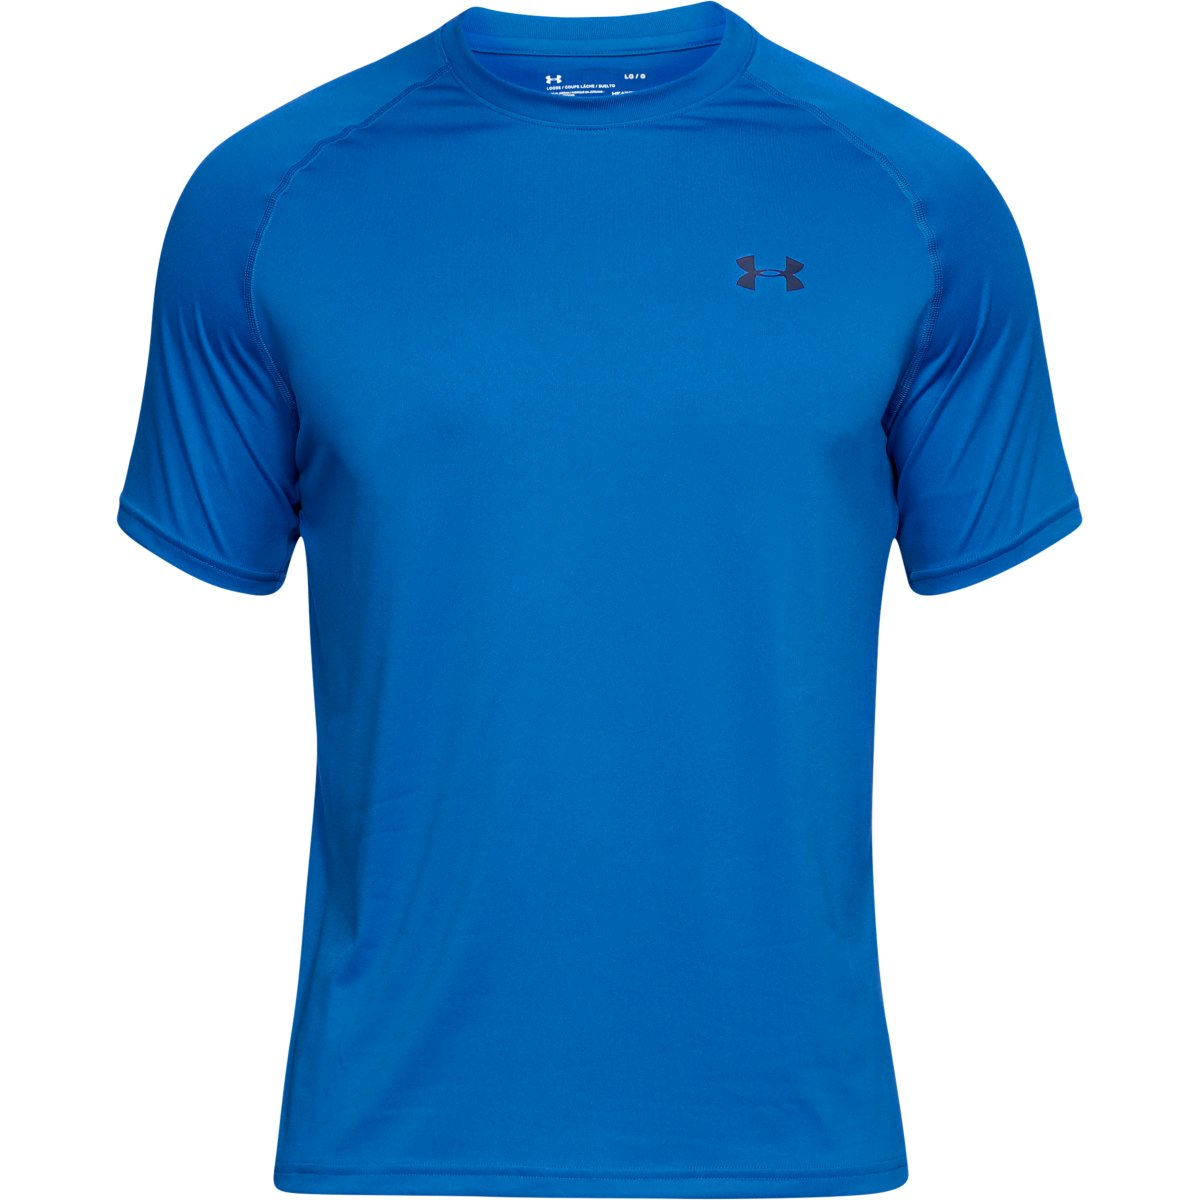 Tech Tops Short Sleeve Under Training Tee Armour Wiggle x7wRqUCy